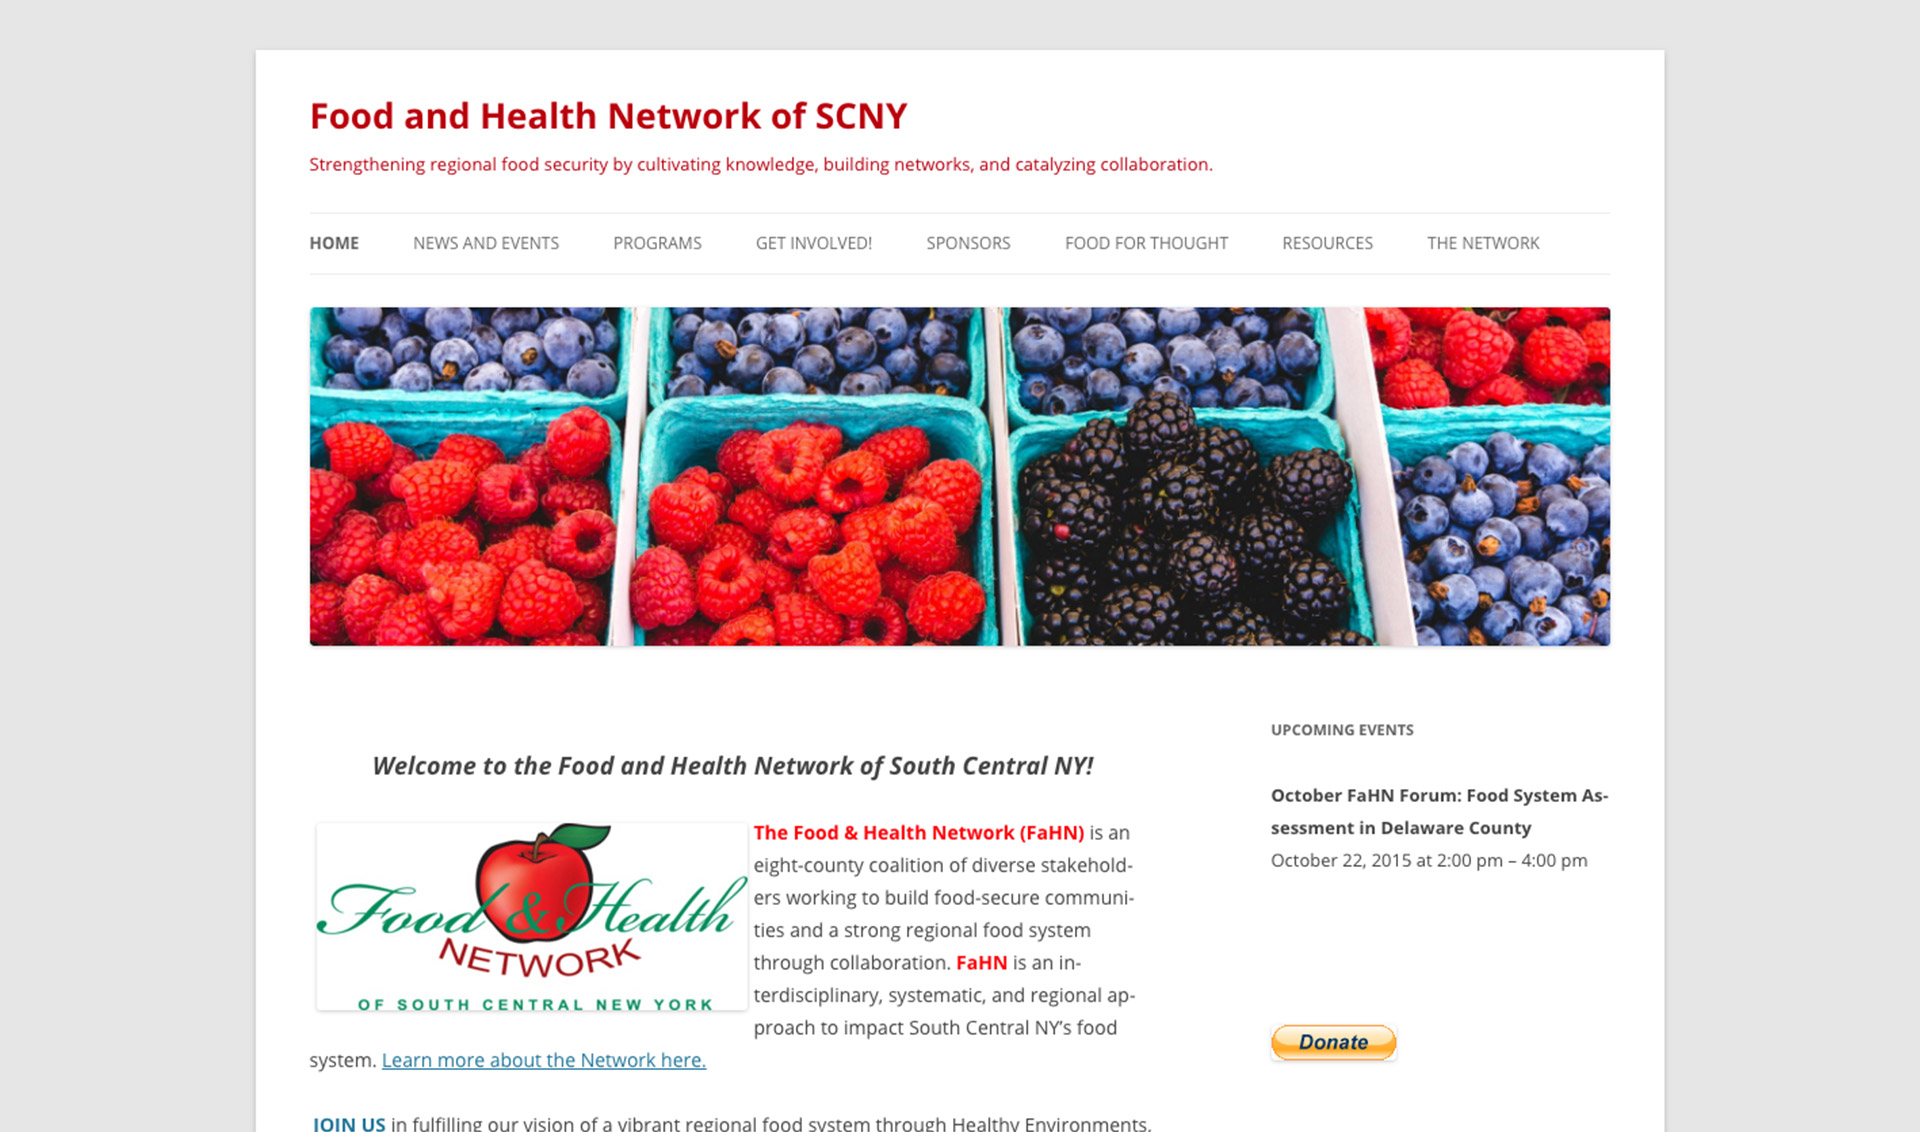 Old Food and Health Network homepage